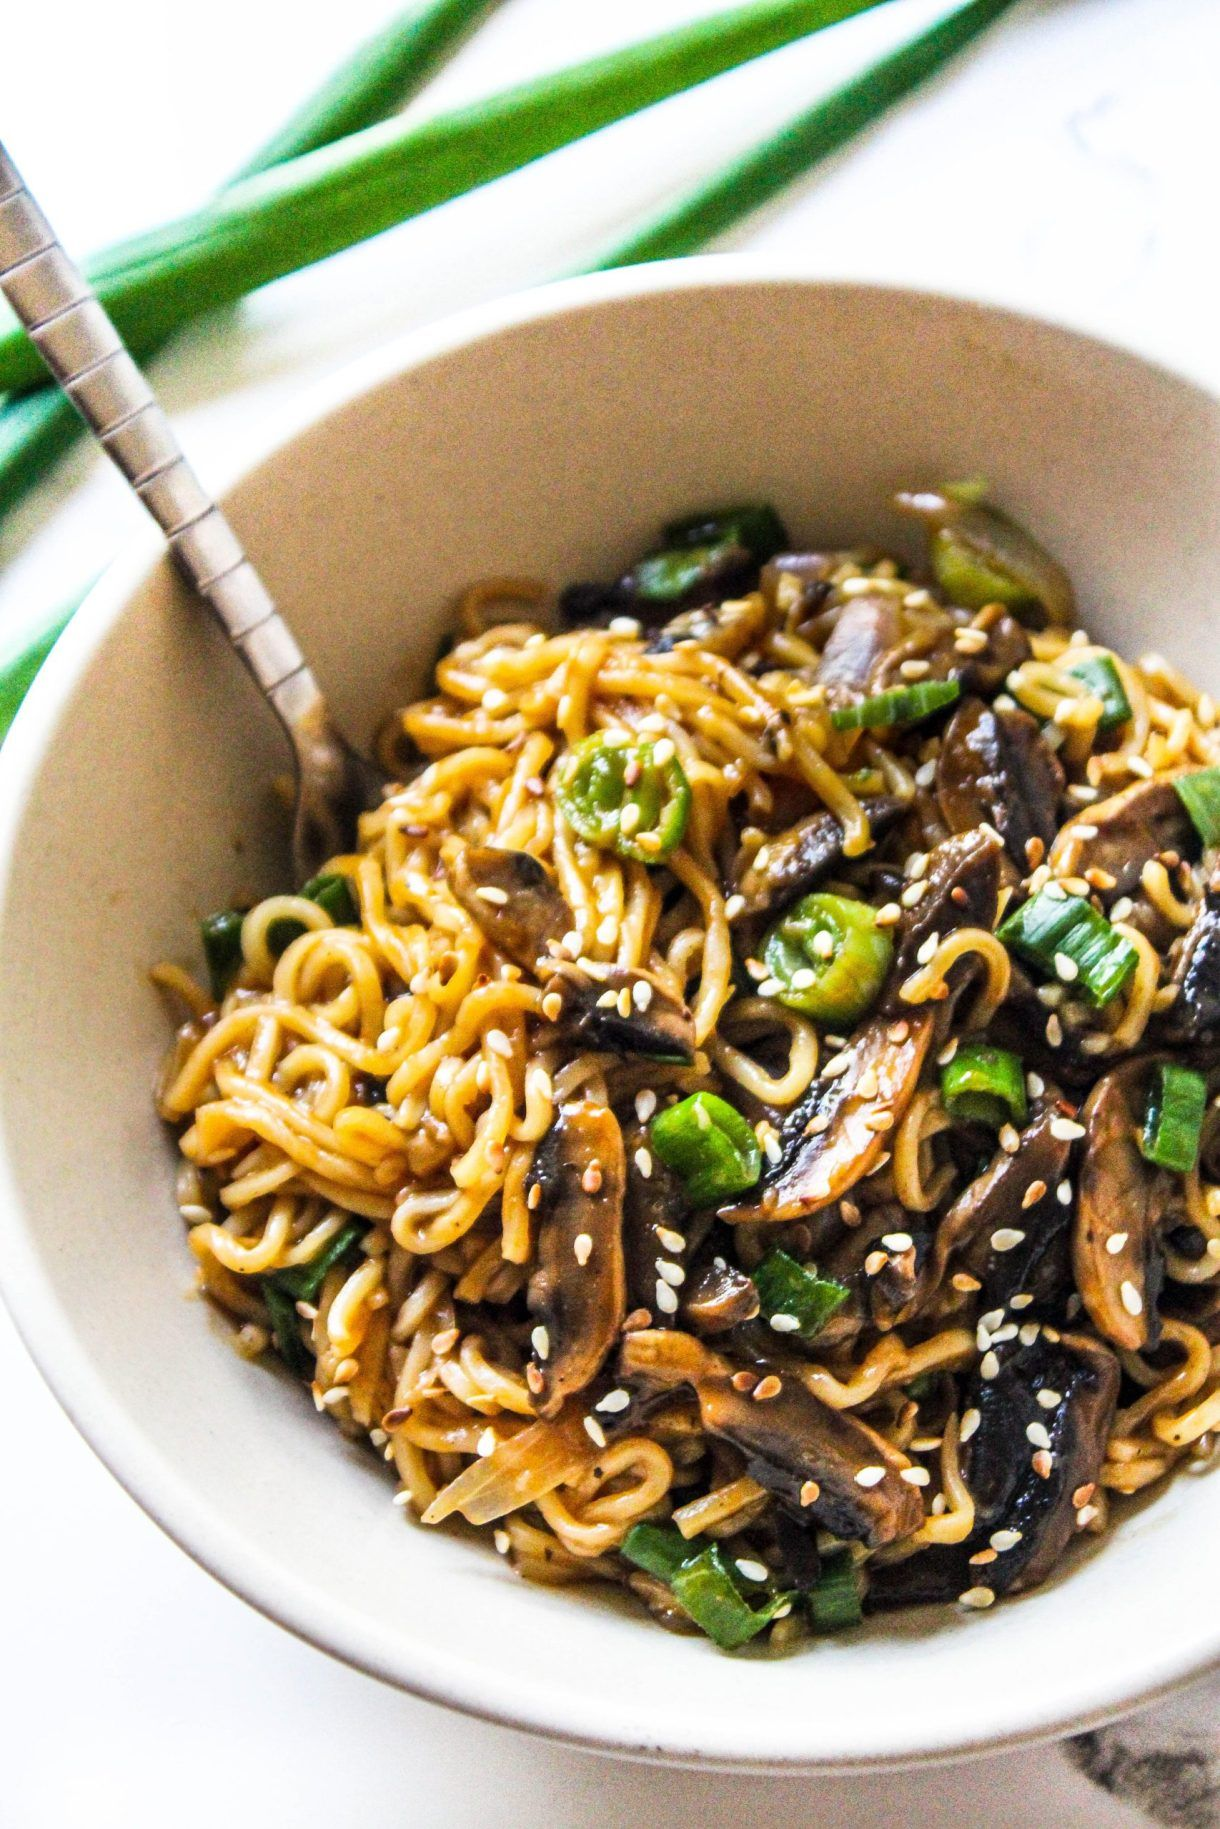 The Quickest Mushroom Ramen Or Maggi Noodles Recipe That Is So Delicious Perfectly Tossed In A Simp In 2020 Mushroom Ramen Stuffed Mushrooms Vegetarian Recipes Easy